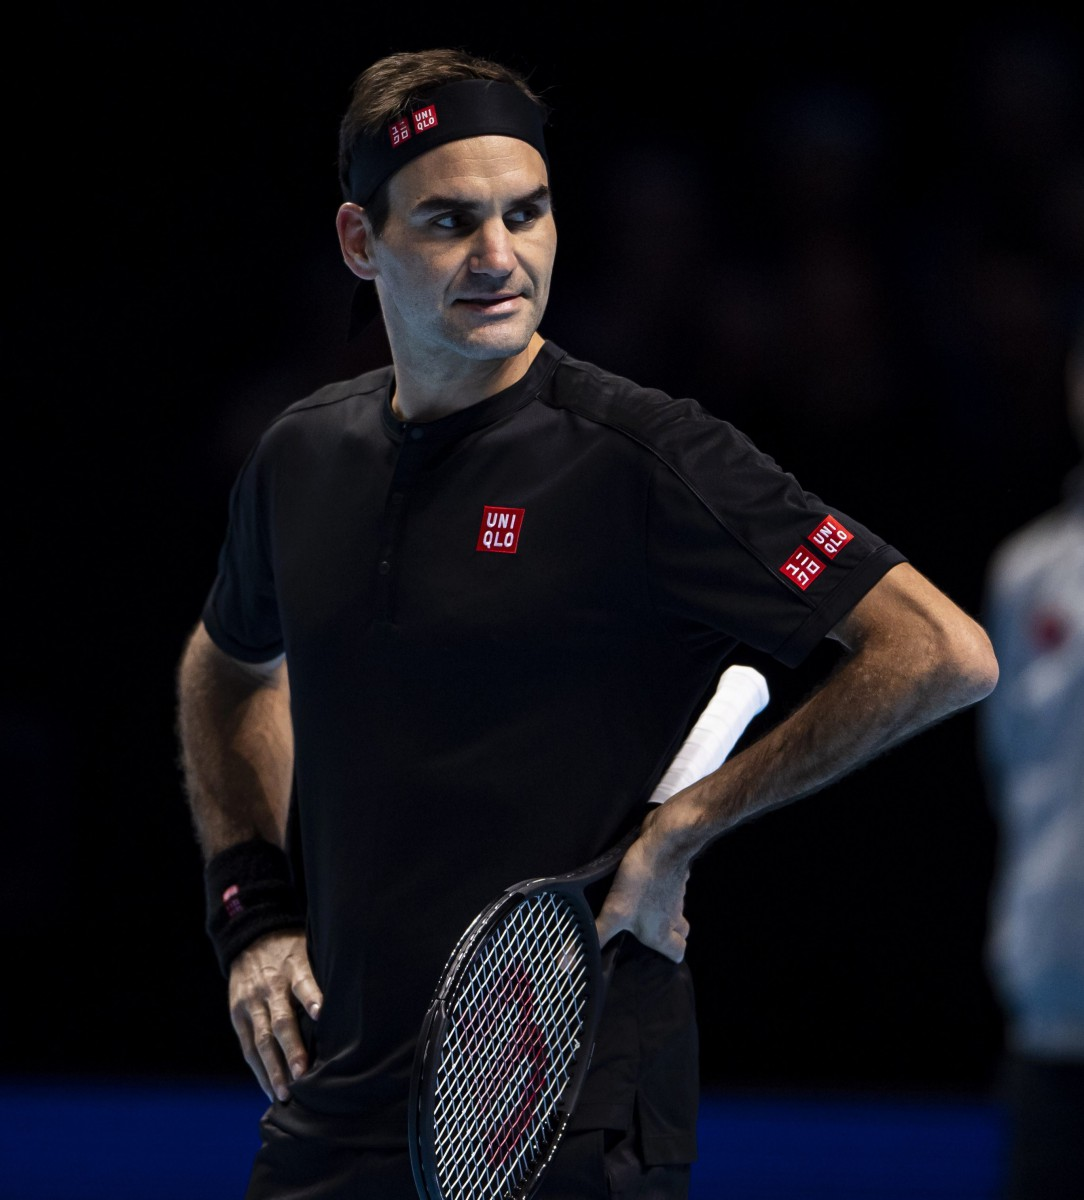 Federer qualified for the ATP Finals for the 17th time this year thanks to a reduced calendar schedule